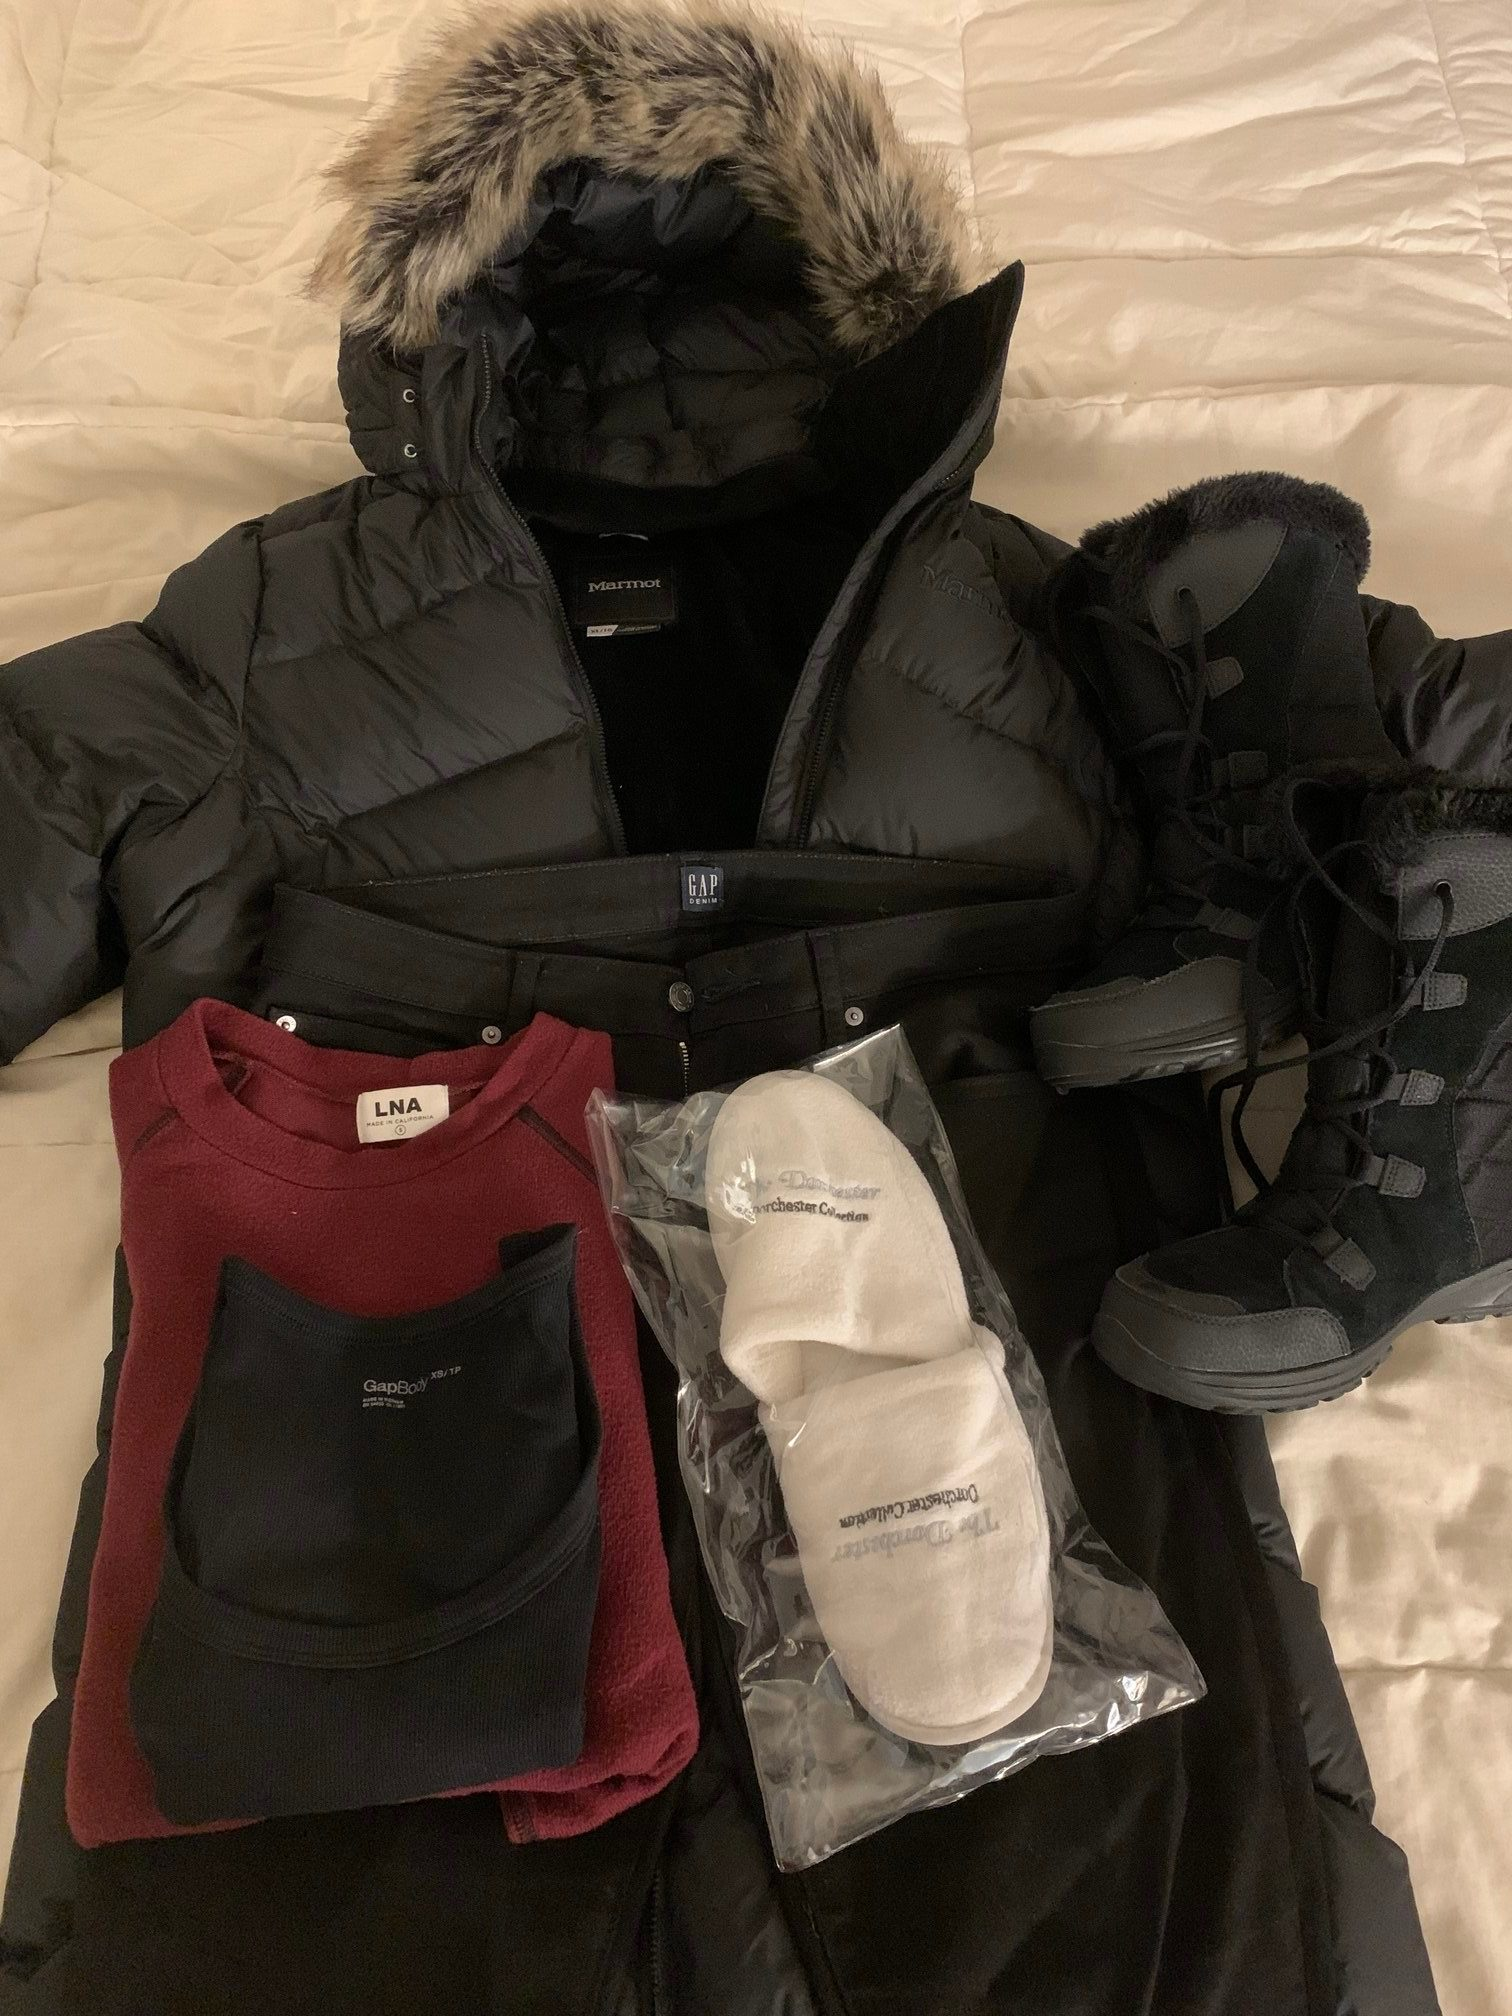 winter clothes on plane pack carry on two weeks international travel